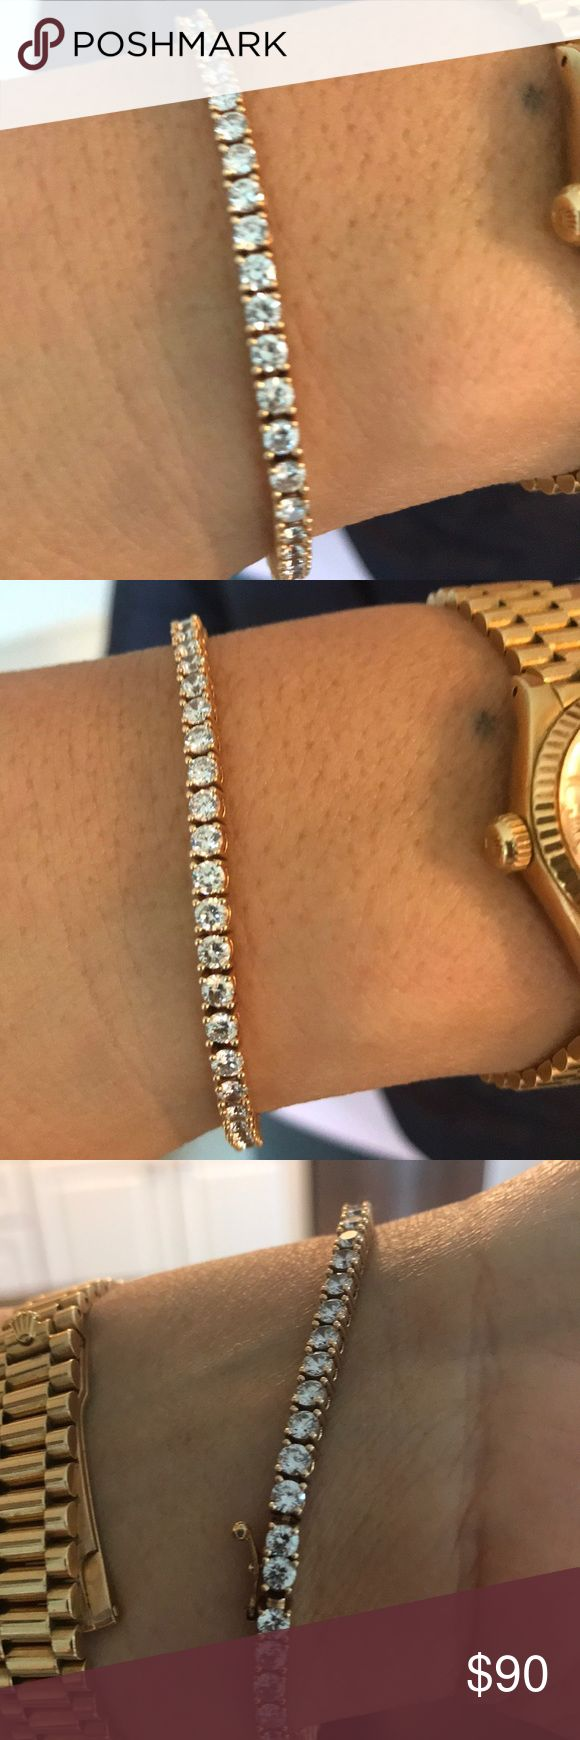 Set in gold gorgeous CZ BRACELET From SAKS FIFTH AVE THIS GORGEOUS TENNIS BRACELET IS A PERFECT PIECE FOR THE HOLIDAYS. Retails for 250 but not here in my closet . You don't need the real deal if your CZ's are good quality! Saks Fifth Avenue Jewelry Bracelets